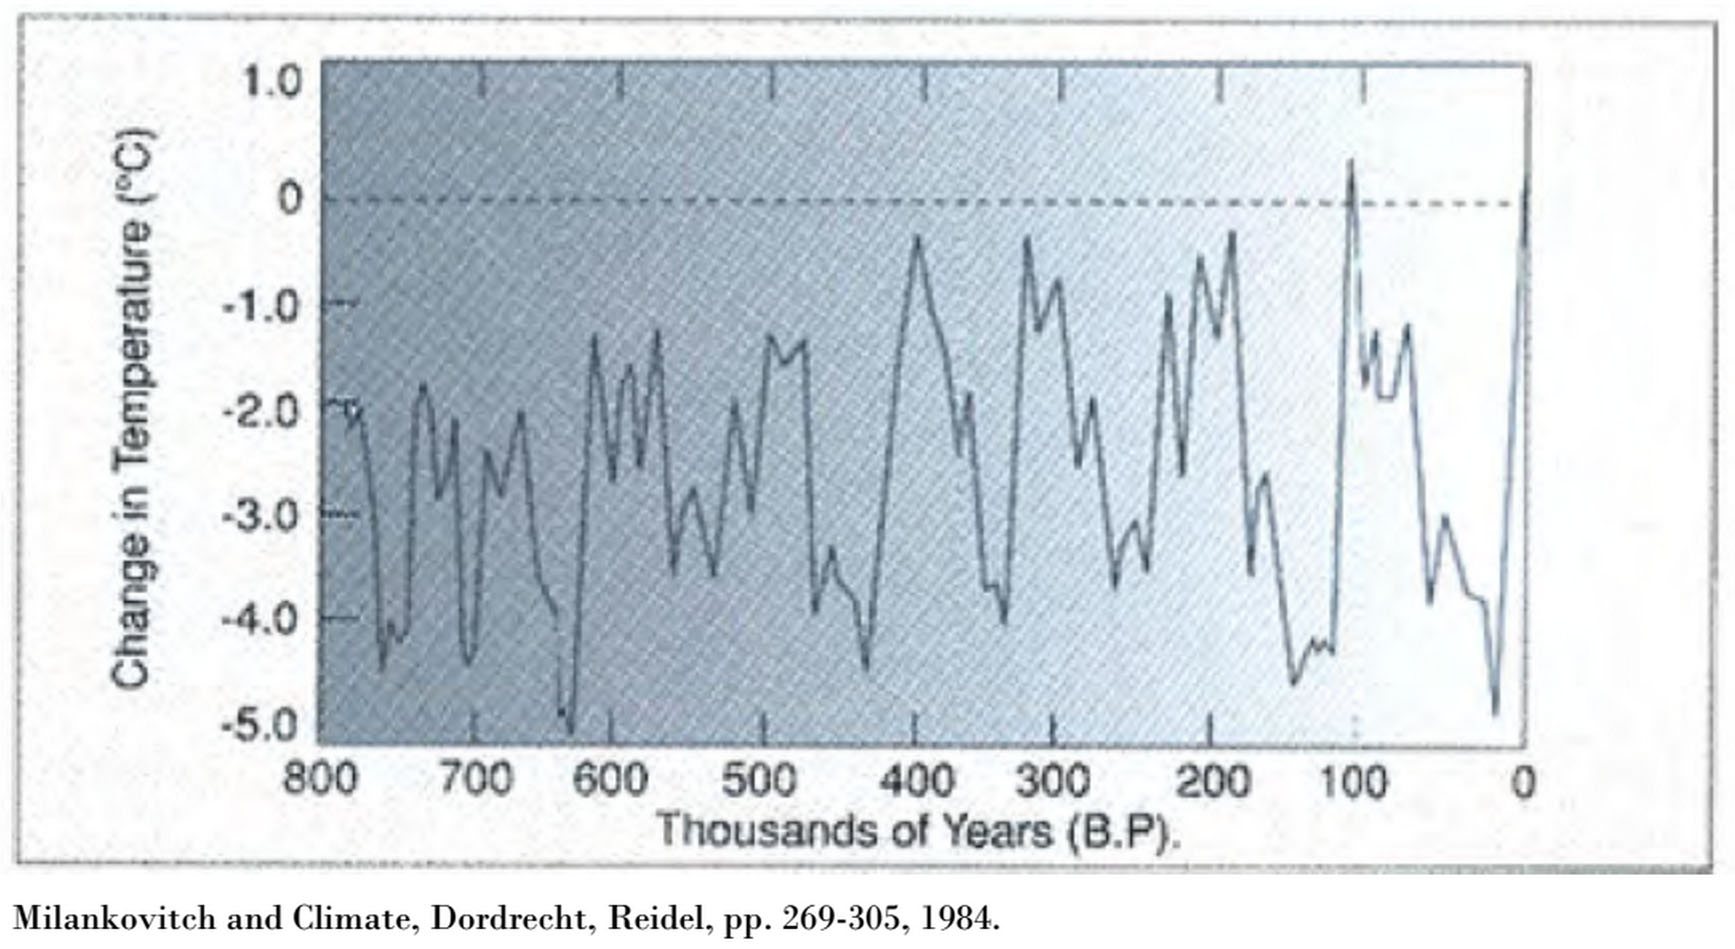 global cooling--temp swings over 1000s of years